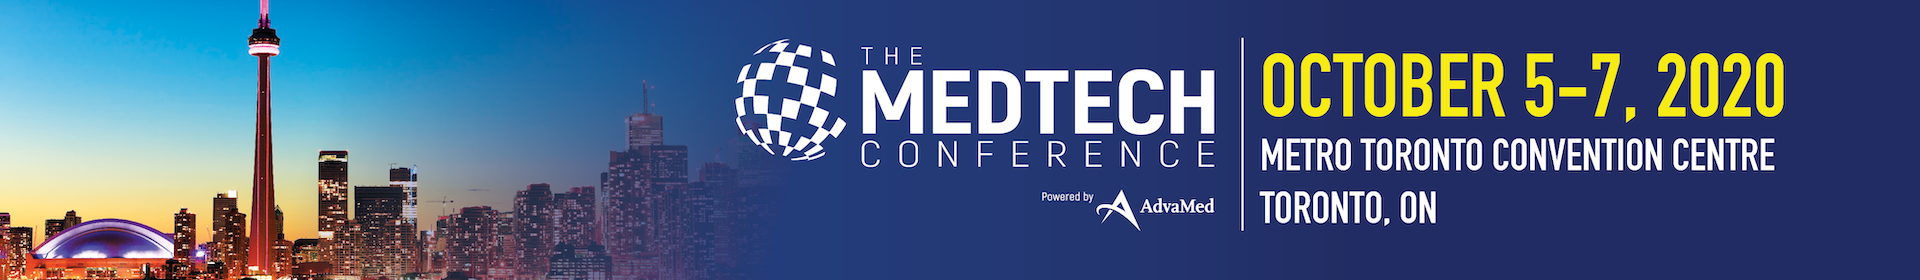 The MedTech Conference Event Banner